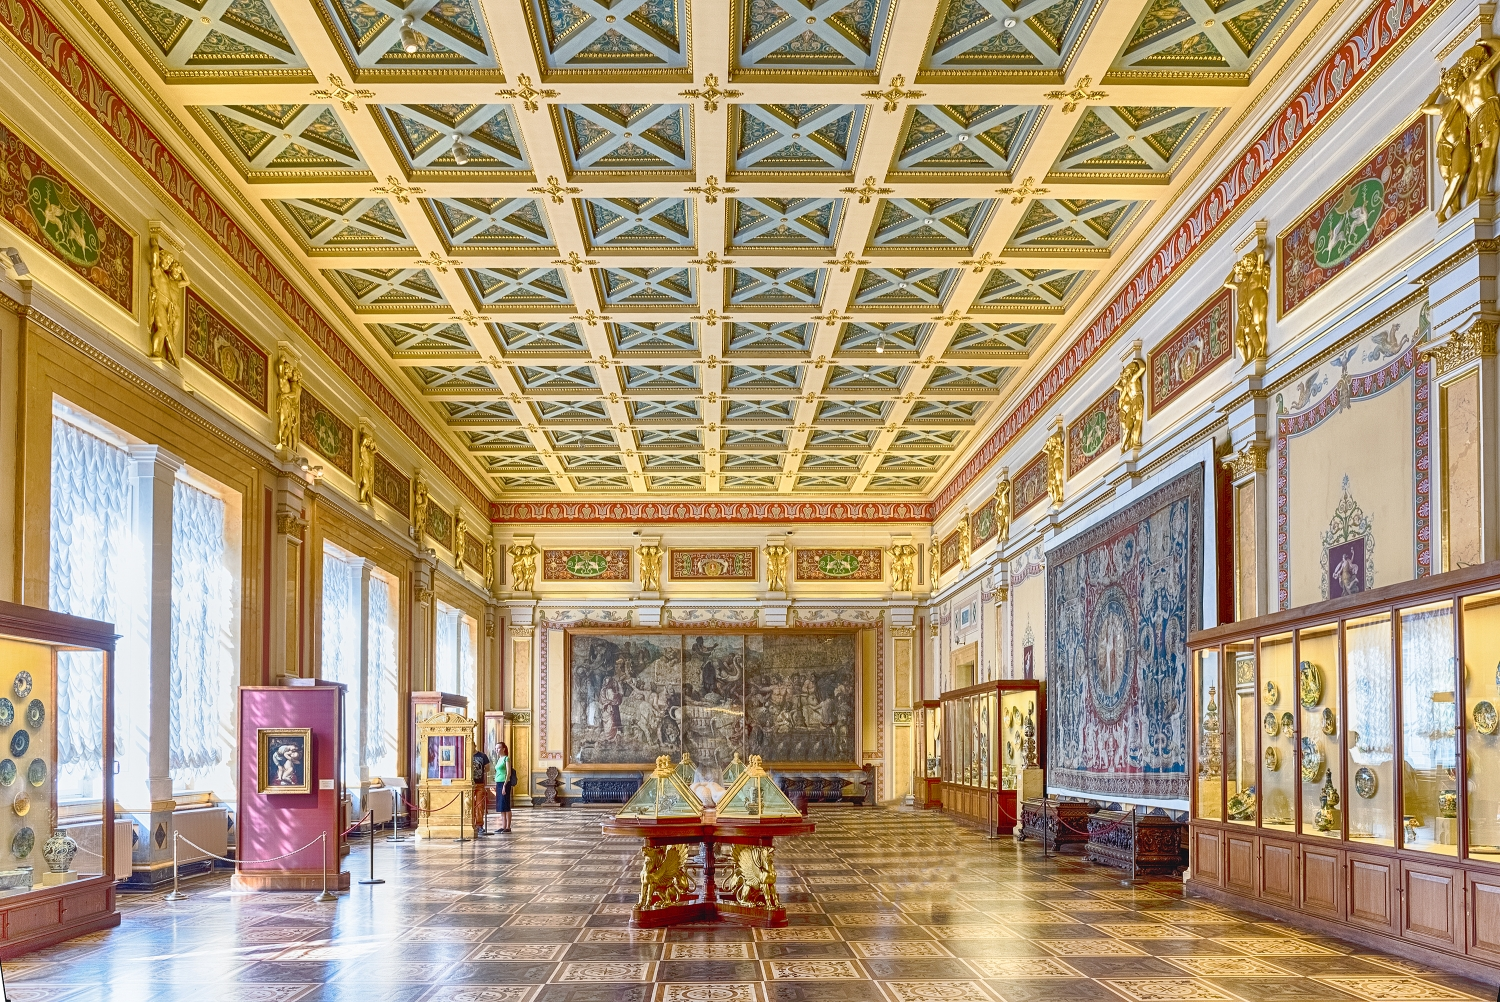 Winter Palace, one of the main highlights of the Hermitage Museum, St. Petersburg